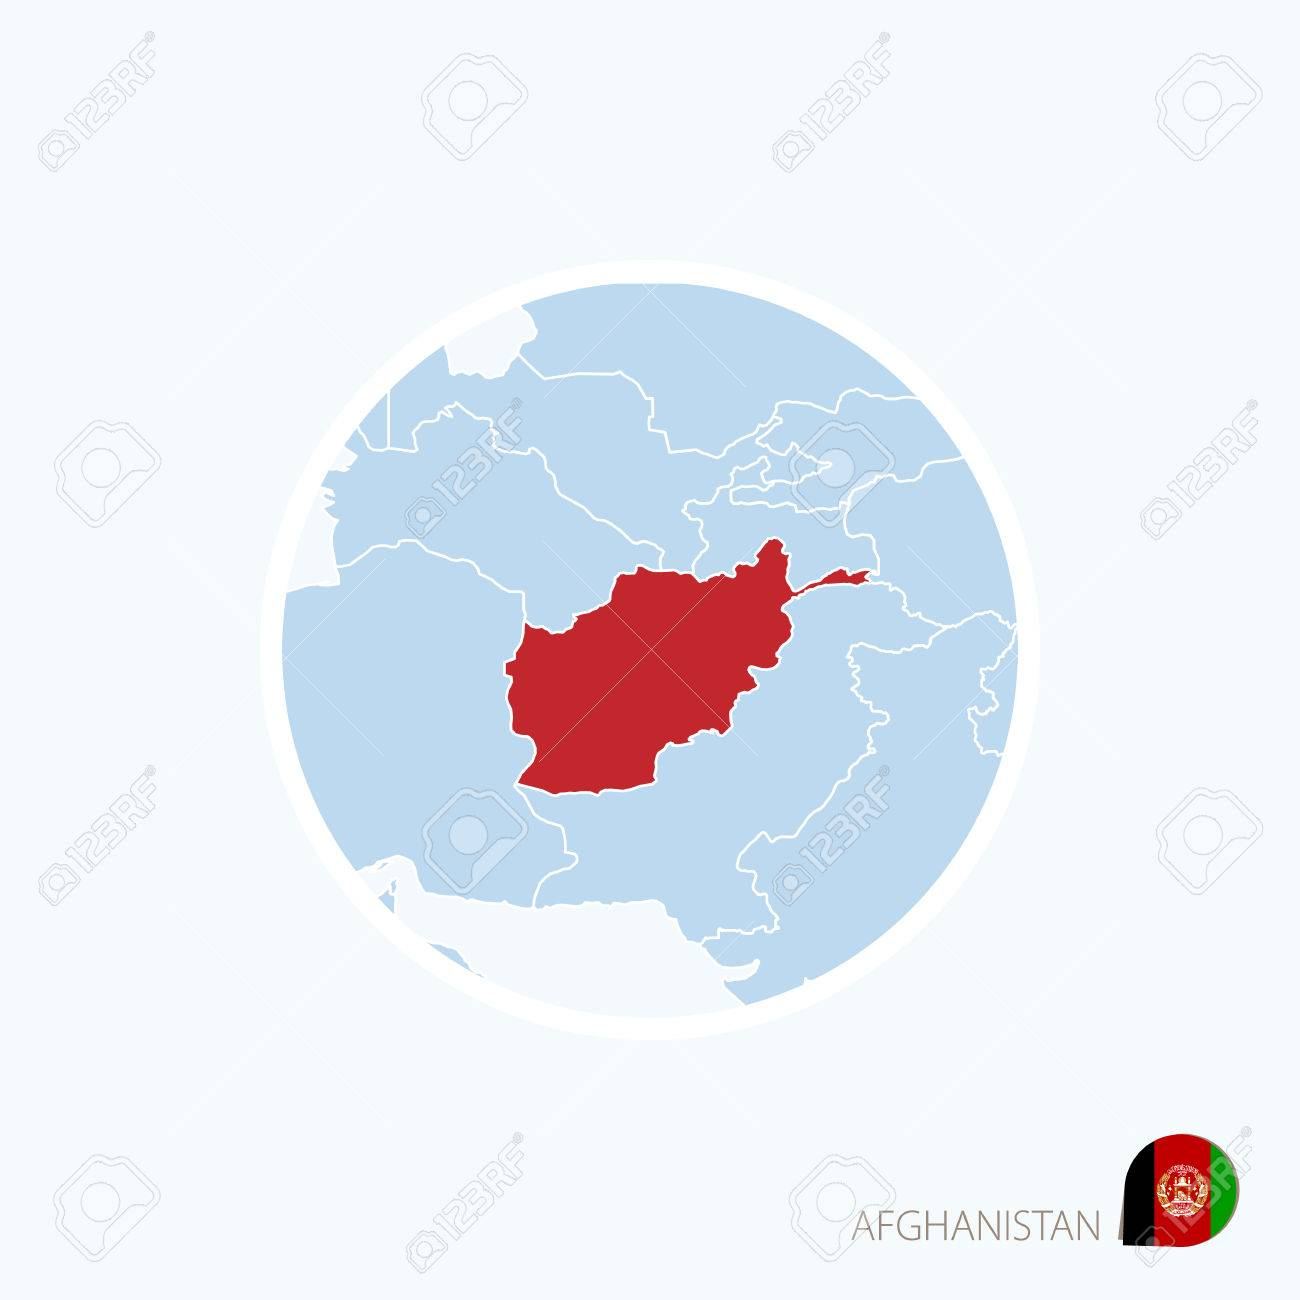 Map icon of afghanistan blue map of south asia with highlighted map icon of afghanistan blue map of south asia with highlighted afghanistan in red color gumiabroncs Image collections